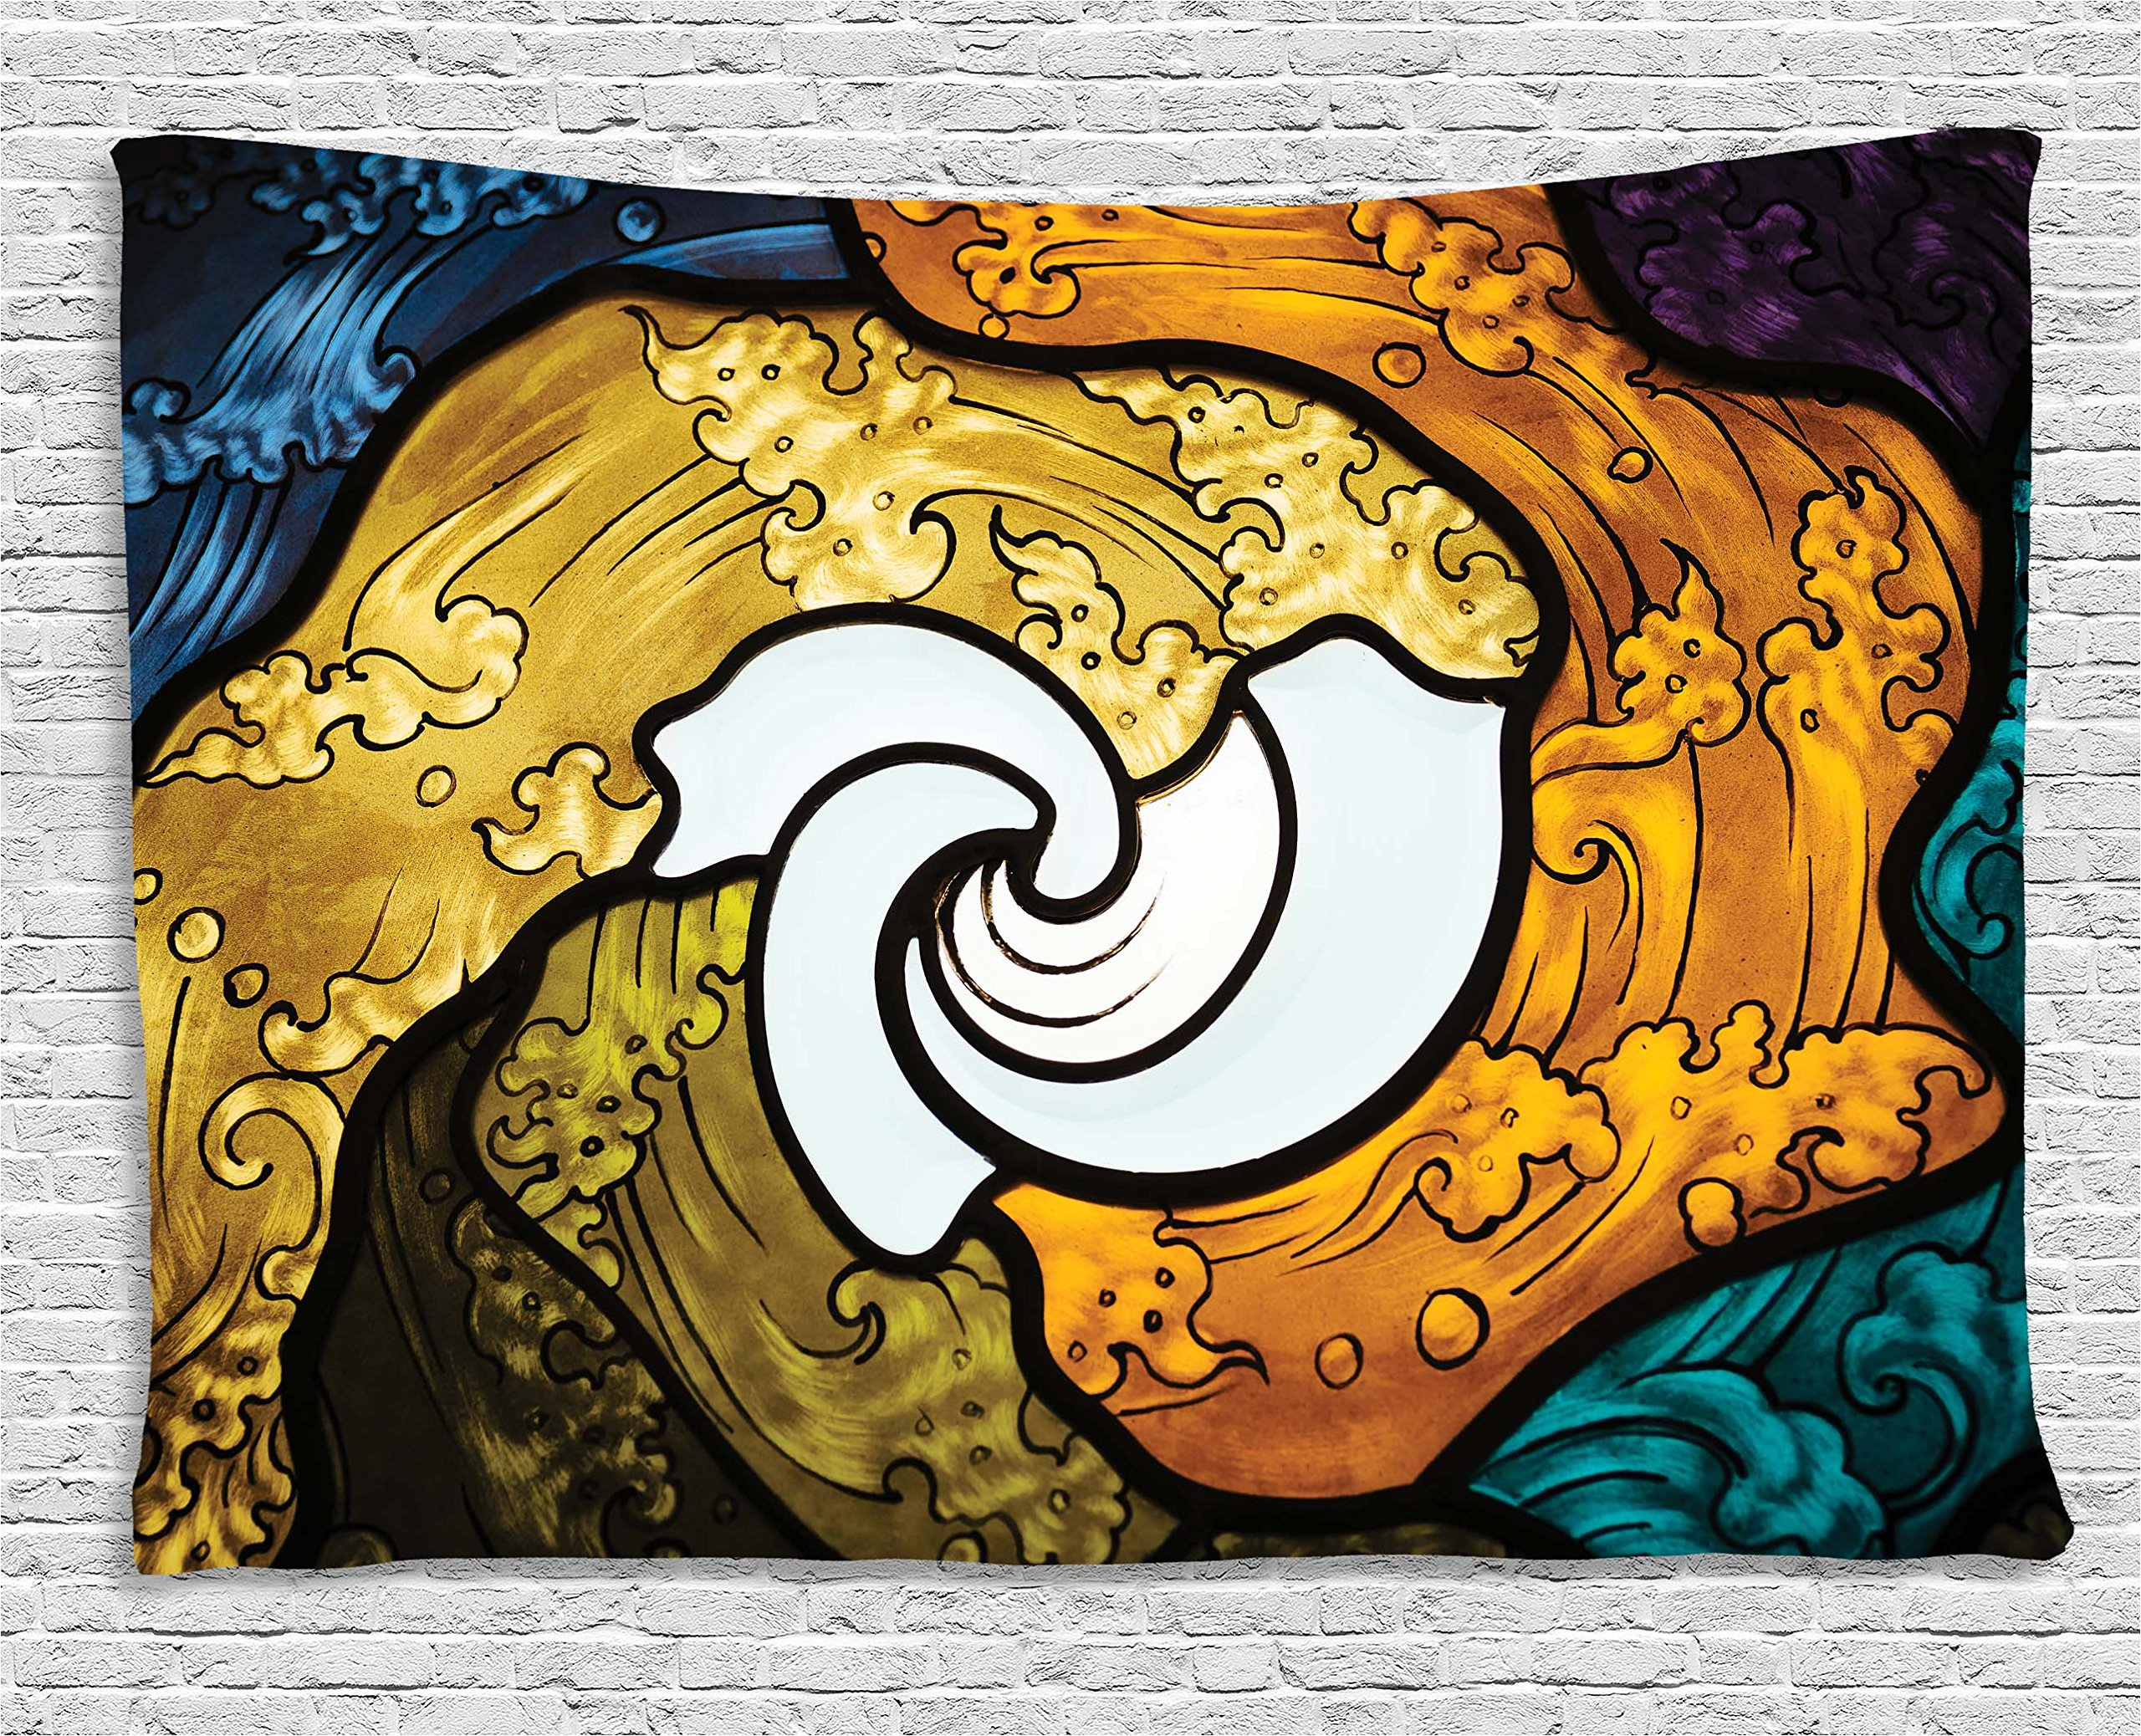 Ambesonne Trippy Decor Tapestry by, Pop Art Style Funky Unusual Stained Glass Window Thai Art Pattern Traditional Image, Wall Hanging for Bedroom Living Room Dorm, 80WX60L Inches, Multi by Ambesonne